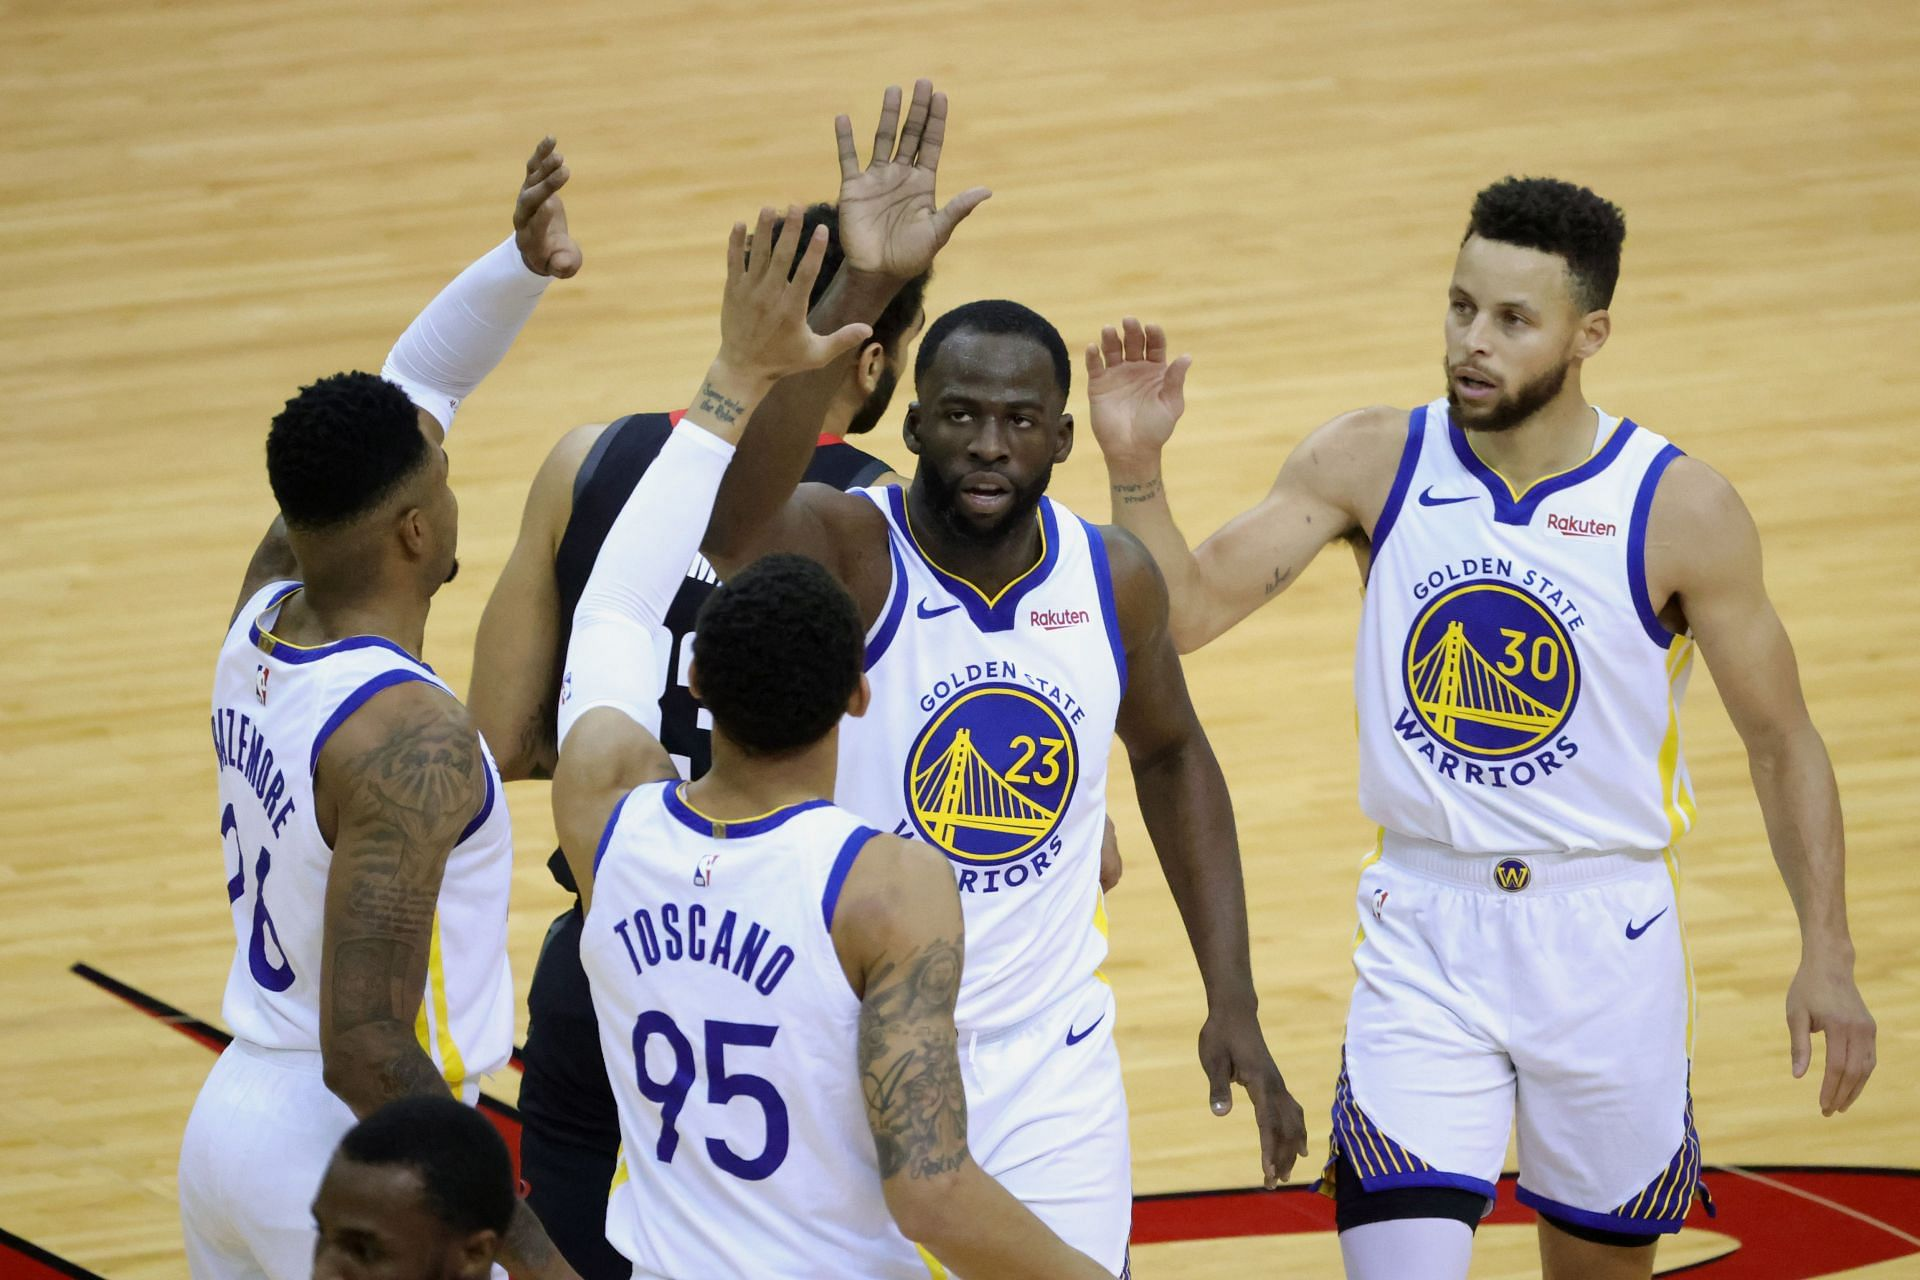 The Golden State Warriors are looking to finish the preseason undefeated.